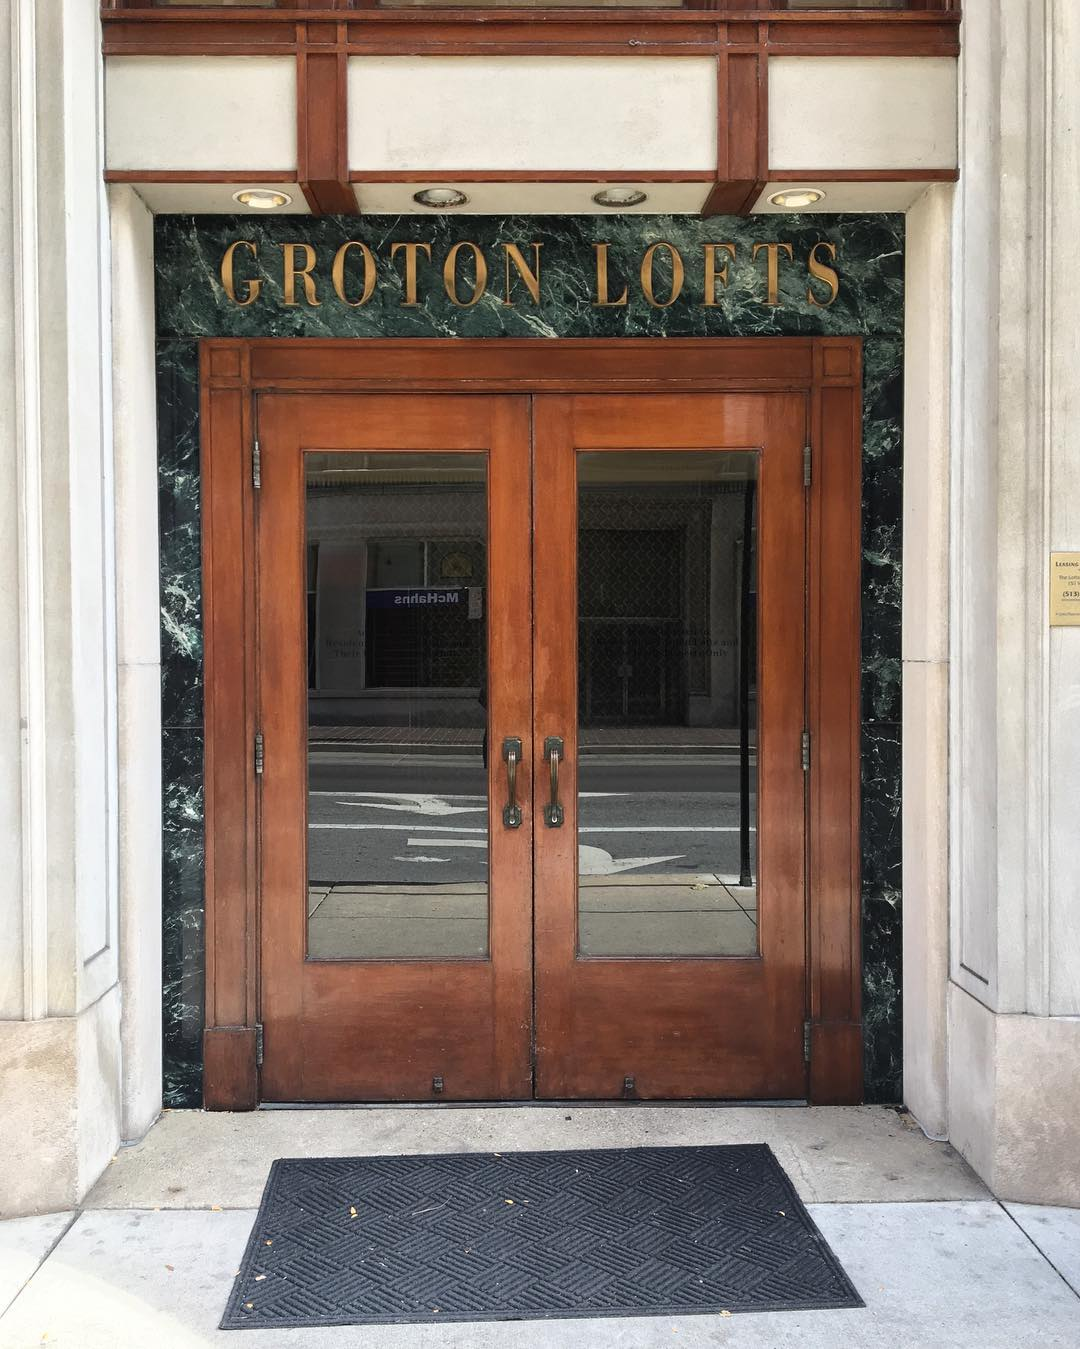 DOOR LOCATION: Downtown Cincinnati / Instagram user @CincinnatiDoors scours the city for interesting entrances to buildings, photographs them head-on, and posts the photos to their account. It allows followers to glimpse the many styles of doors around town, offering a different design perspective many wouldn't consider without direction from the account. / IMAGE: IG user @CincinnatiDoors // Published: 1.24.17